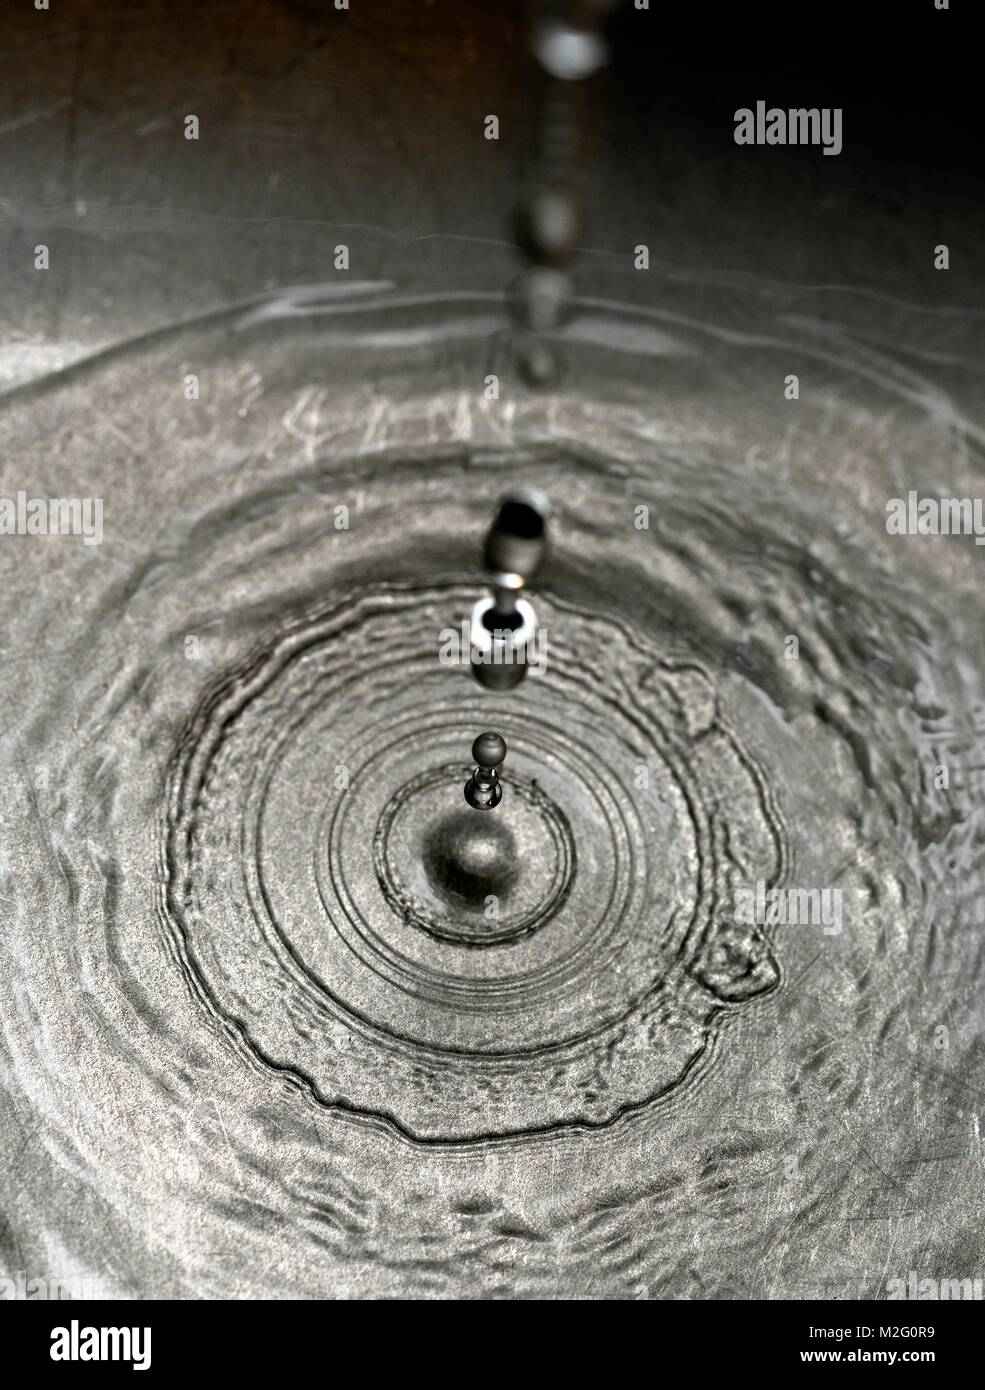 water droplets dropping into a stainless steel sink - Stock Image